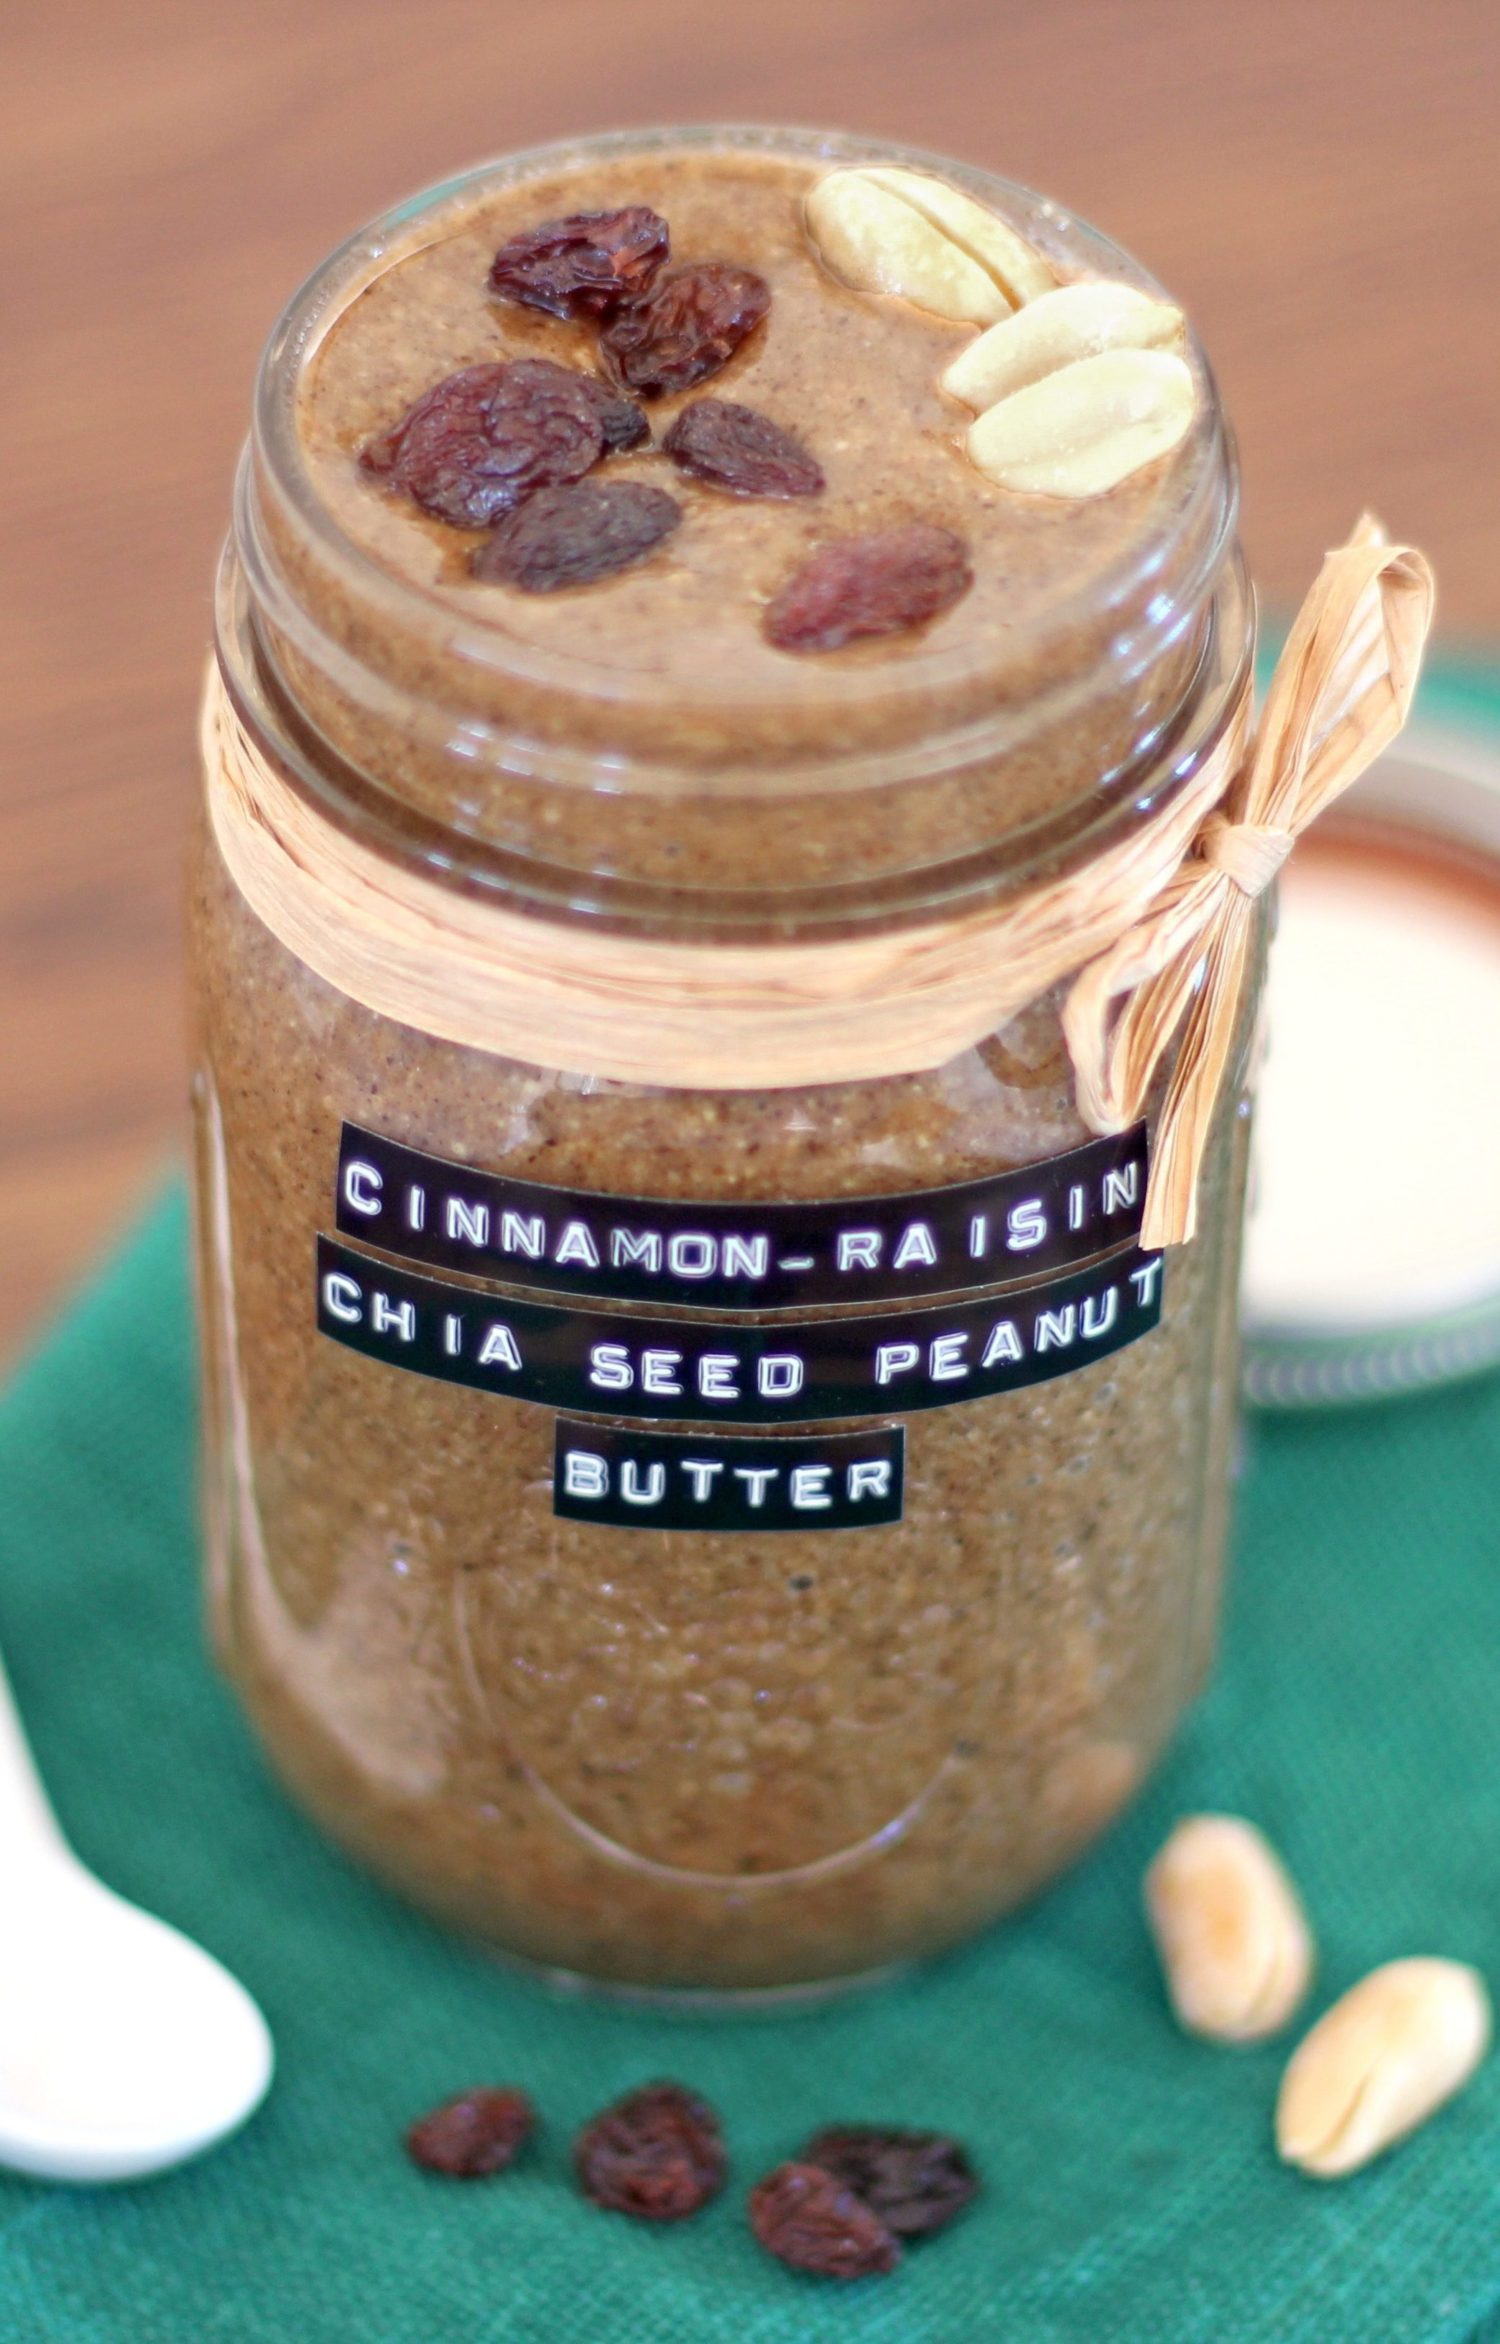 Healthy Cinnamon Raisin Chia Seed Peanut Butter (refined sugar free, gluten free, dairy free, vegan) - Healthy Dessert Recipes at Desserts with Benefits